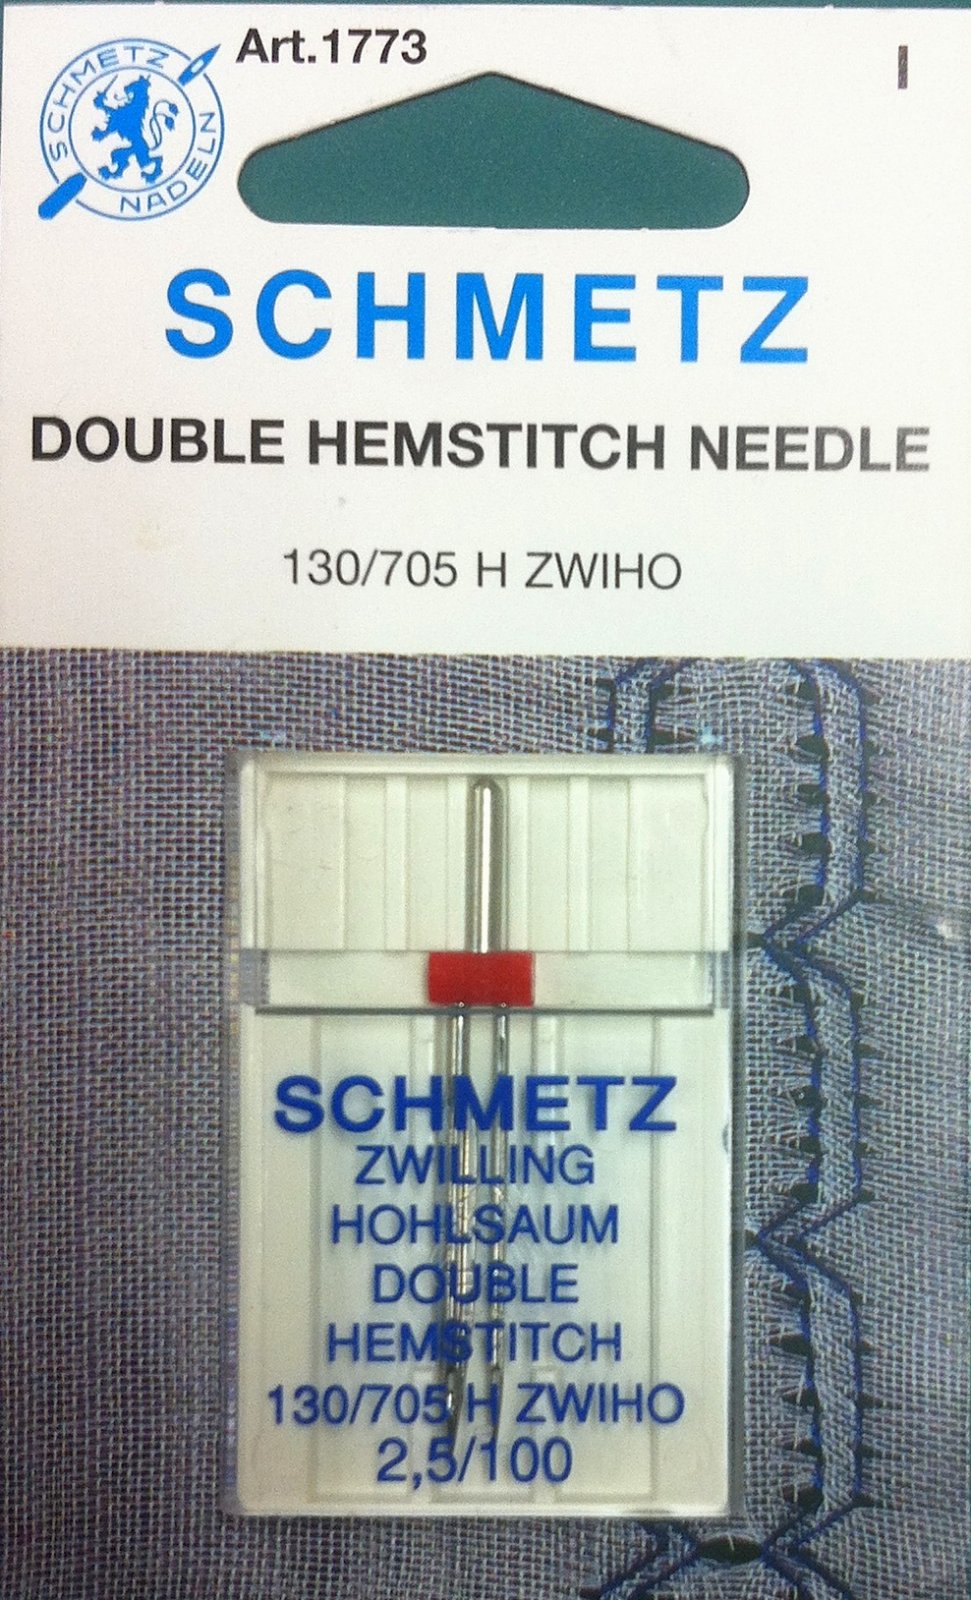 Schmetz Double Hemstitch Needle 2.5/100